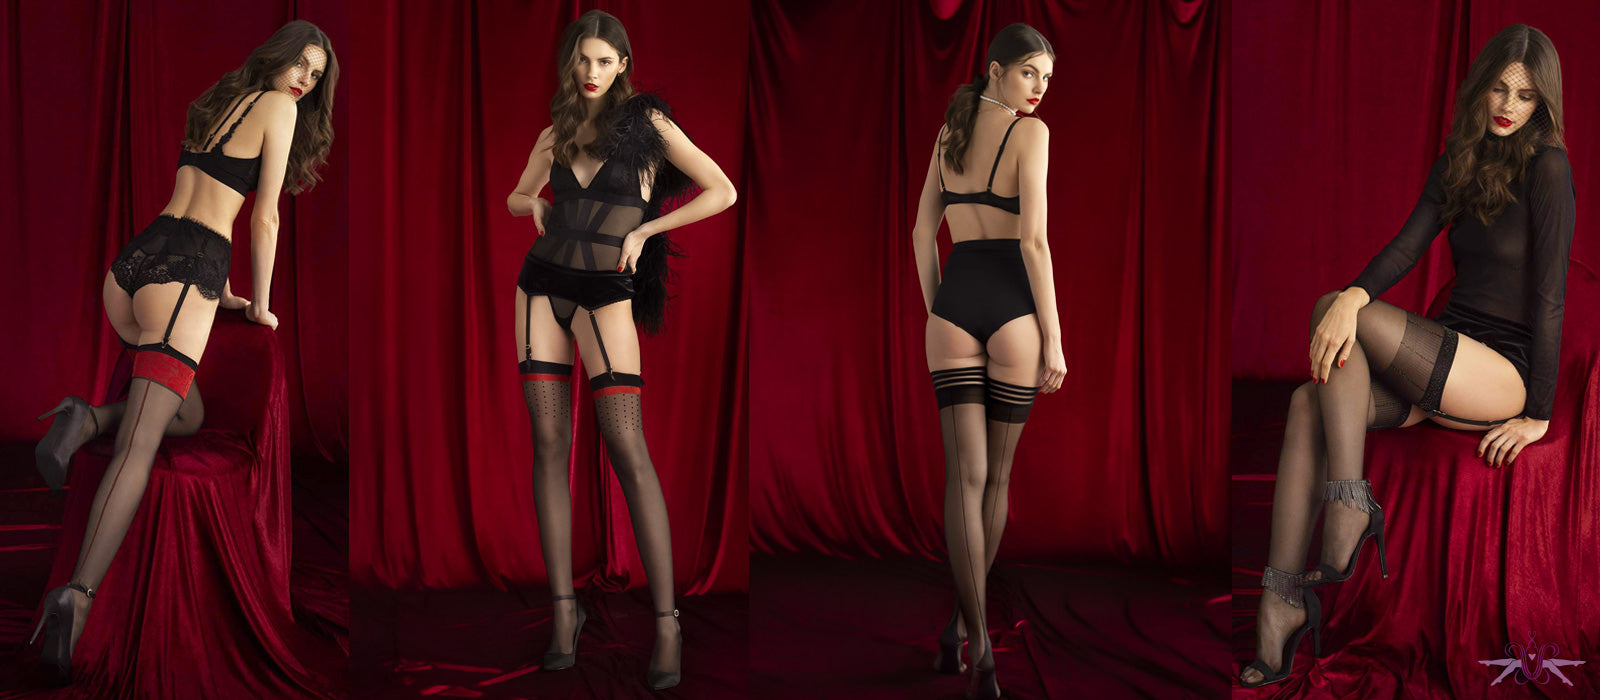 The Fiore Sensual stockings hold ups and tights from Mayfair Stockings